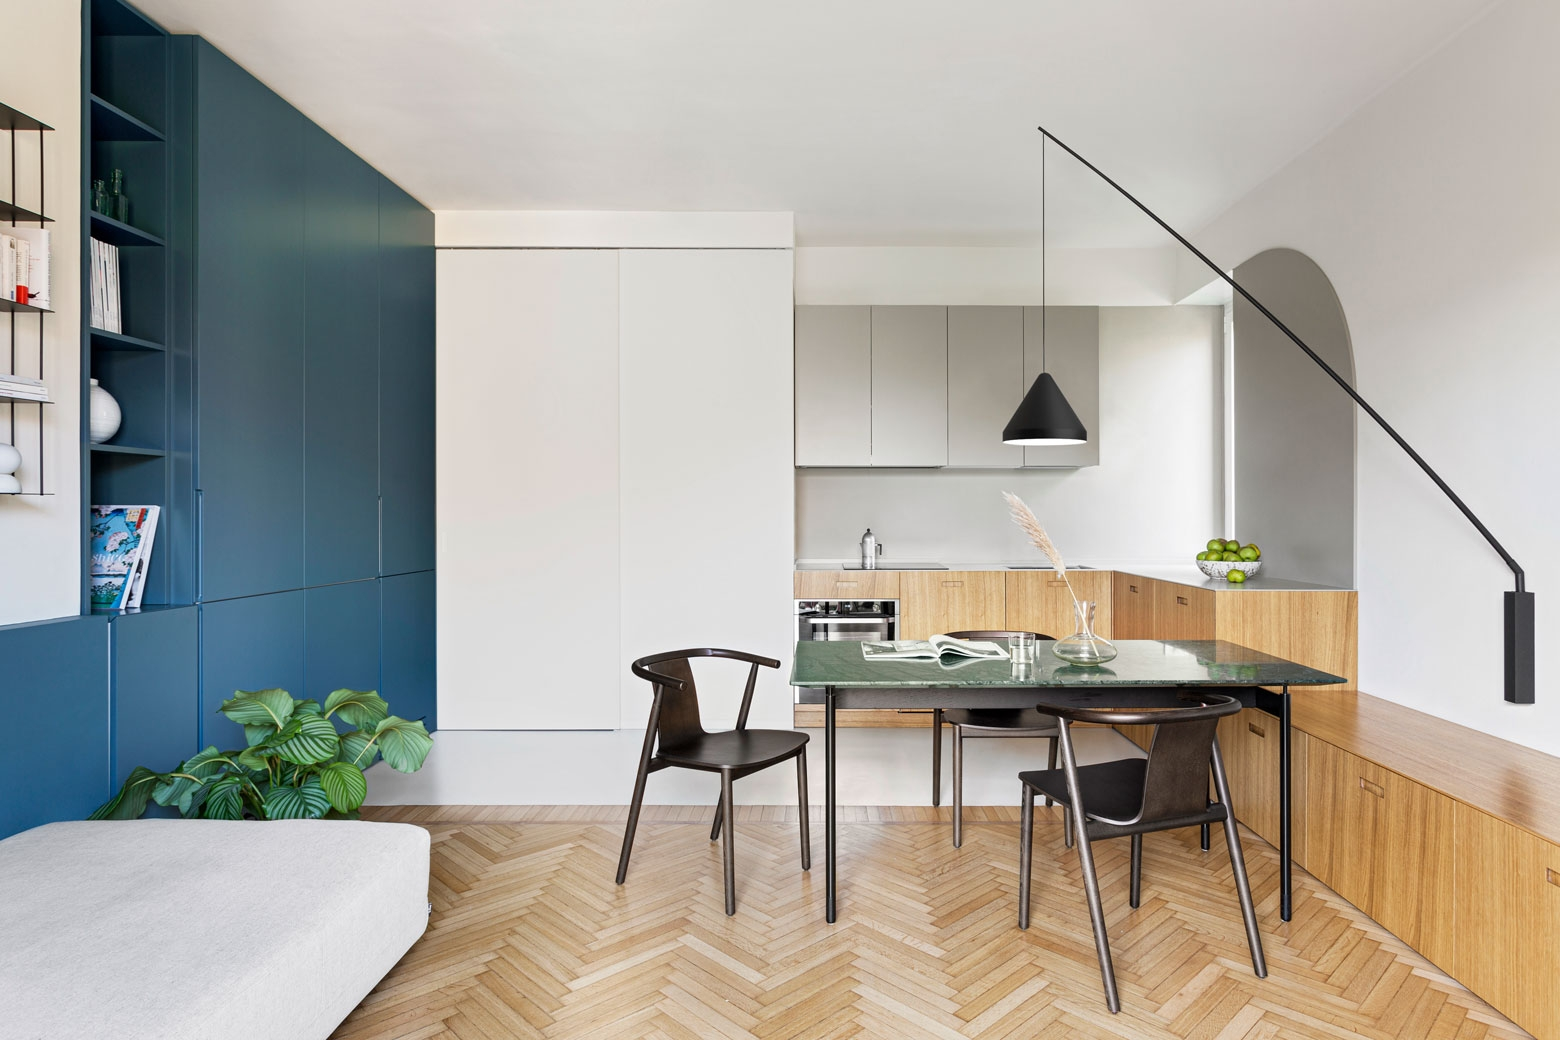 Vibia The Edit - A Renovated Milan Apartment North